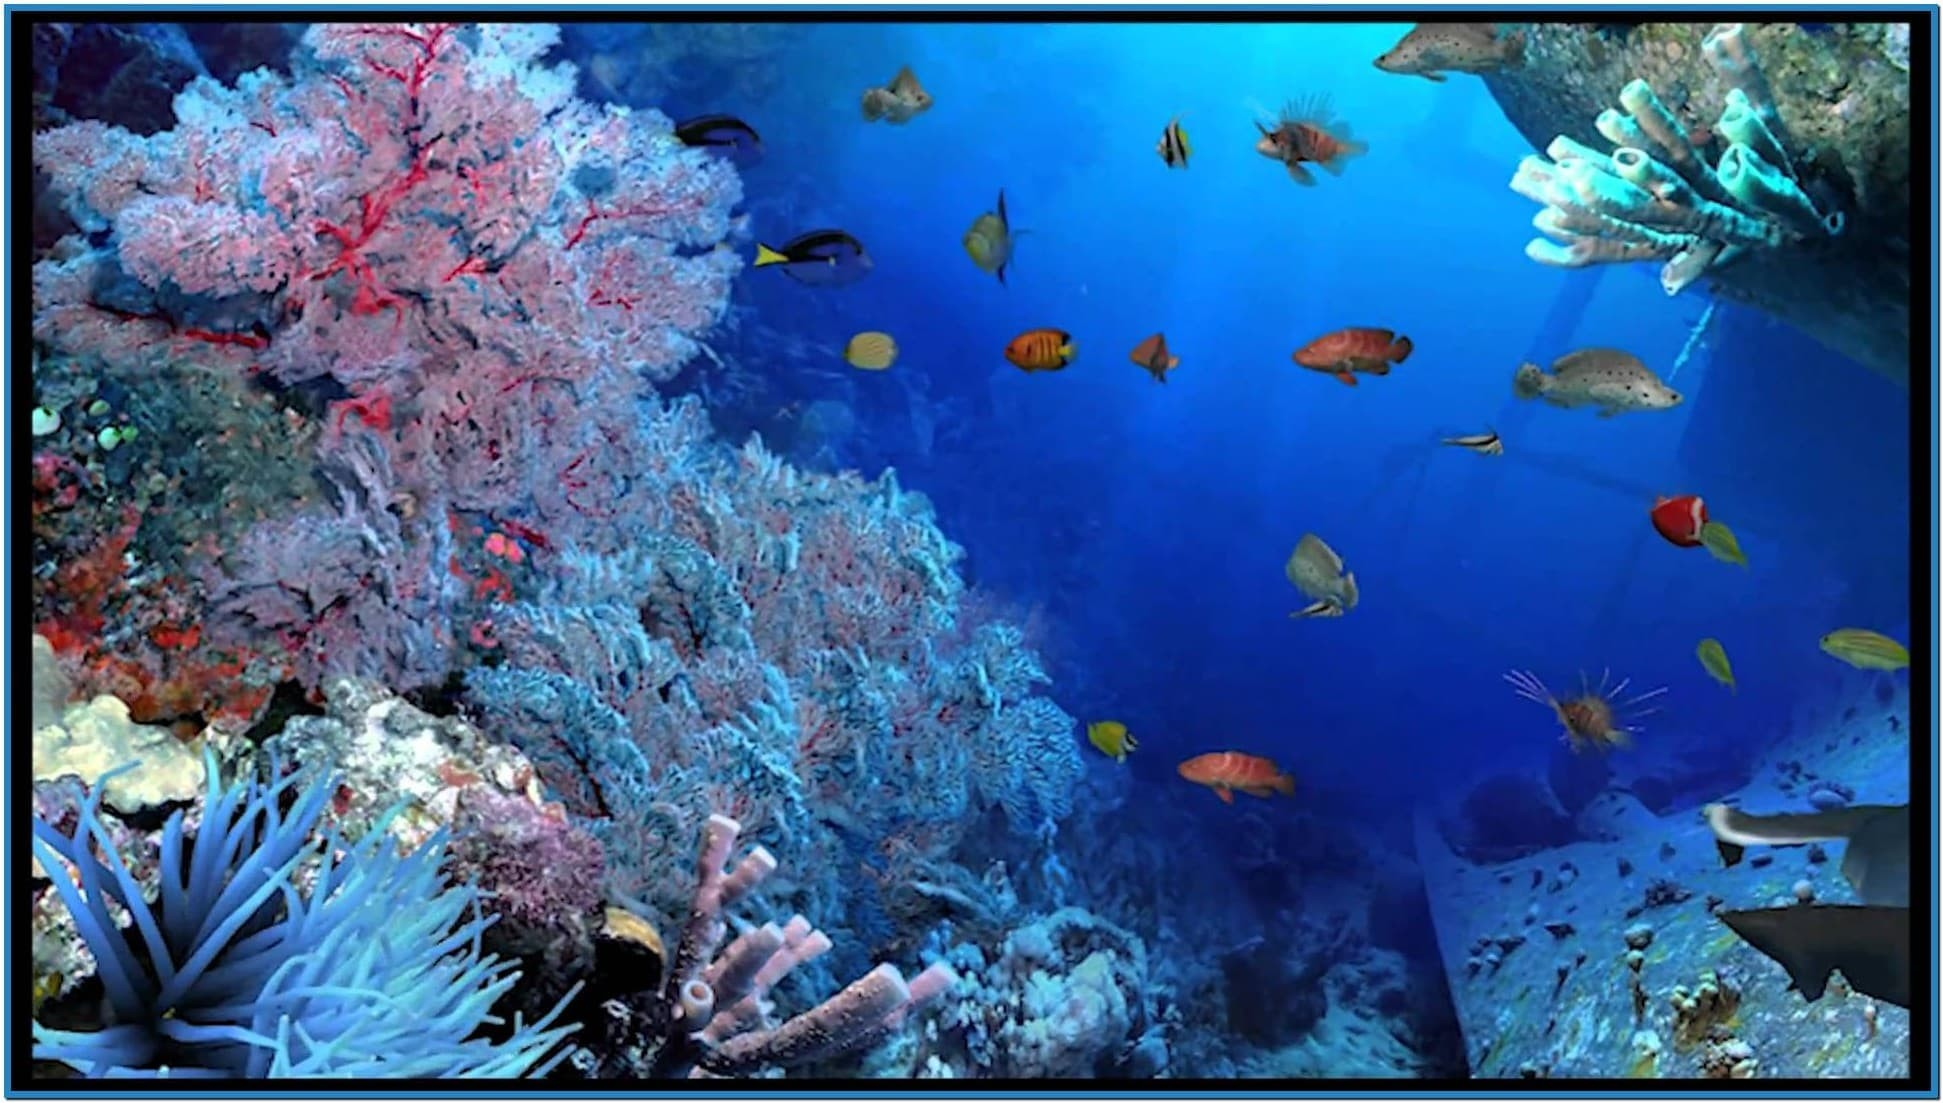 51 Aquarium Live Wallpaper For Pc